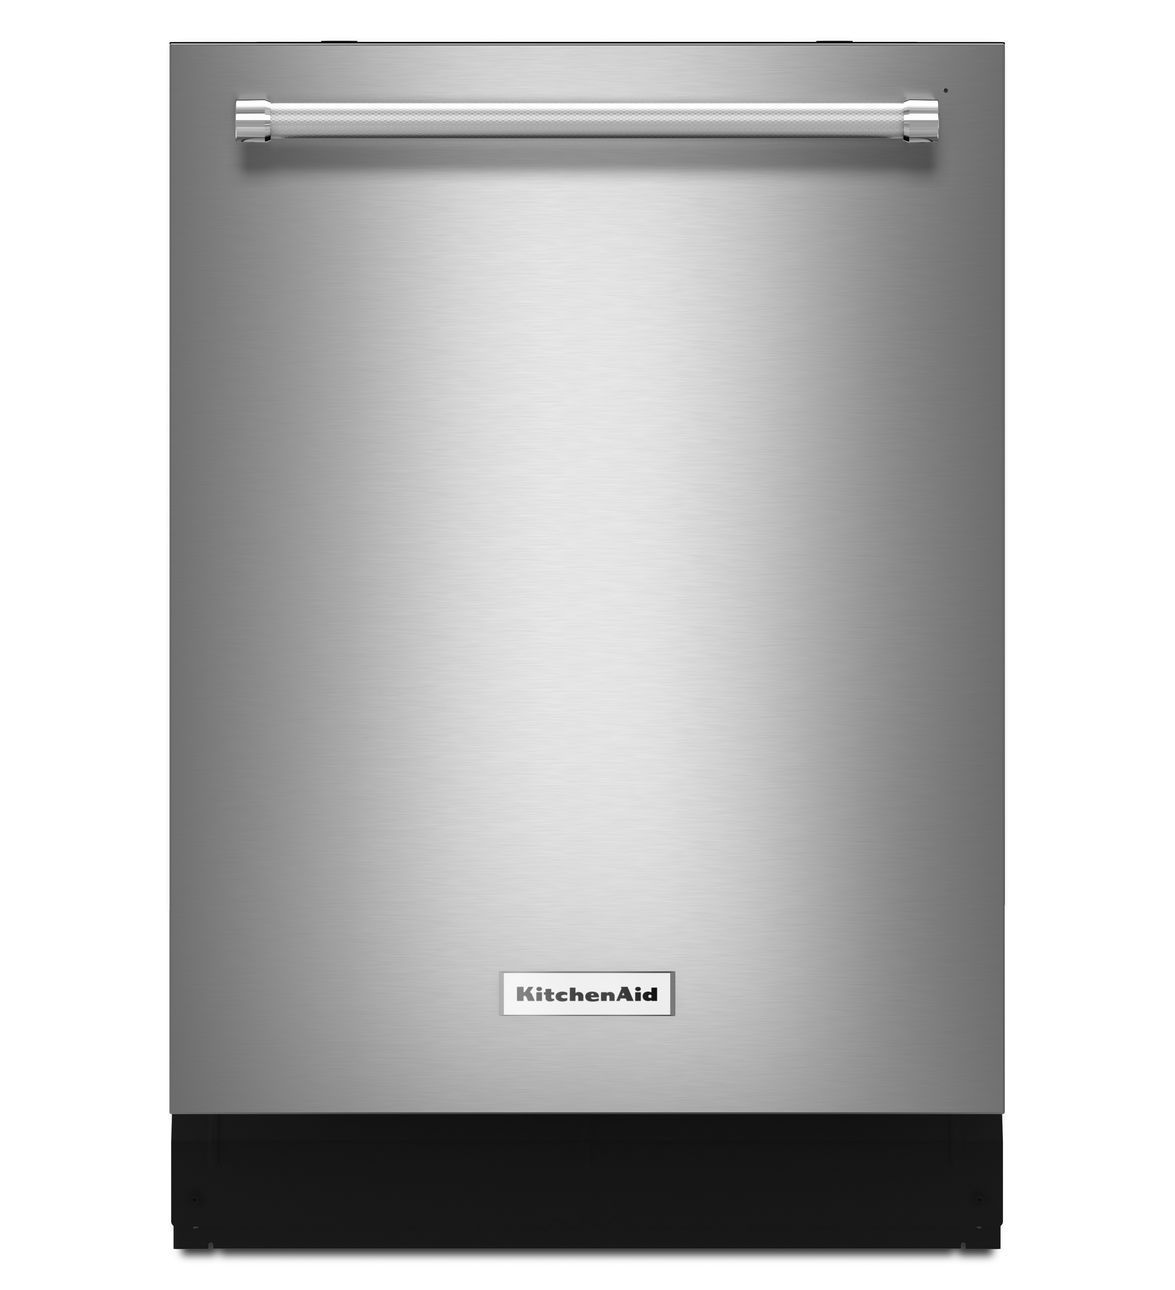 kitchenaid dishwasher review